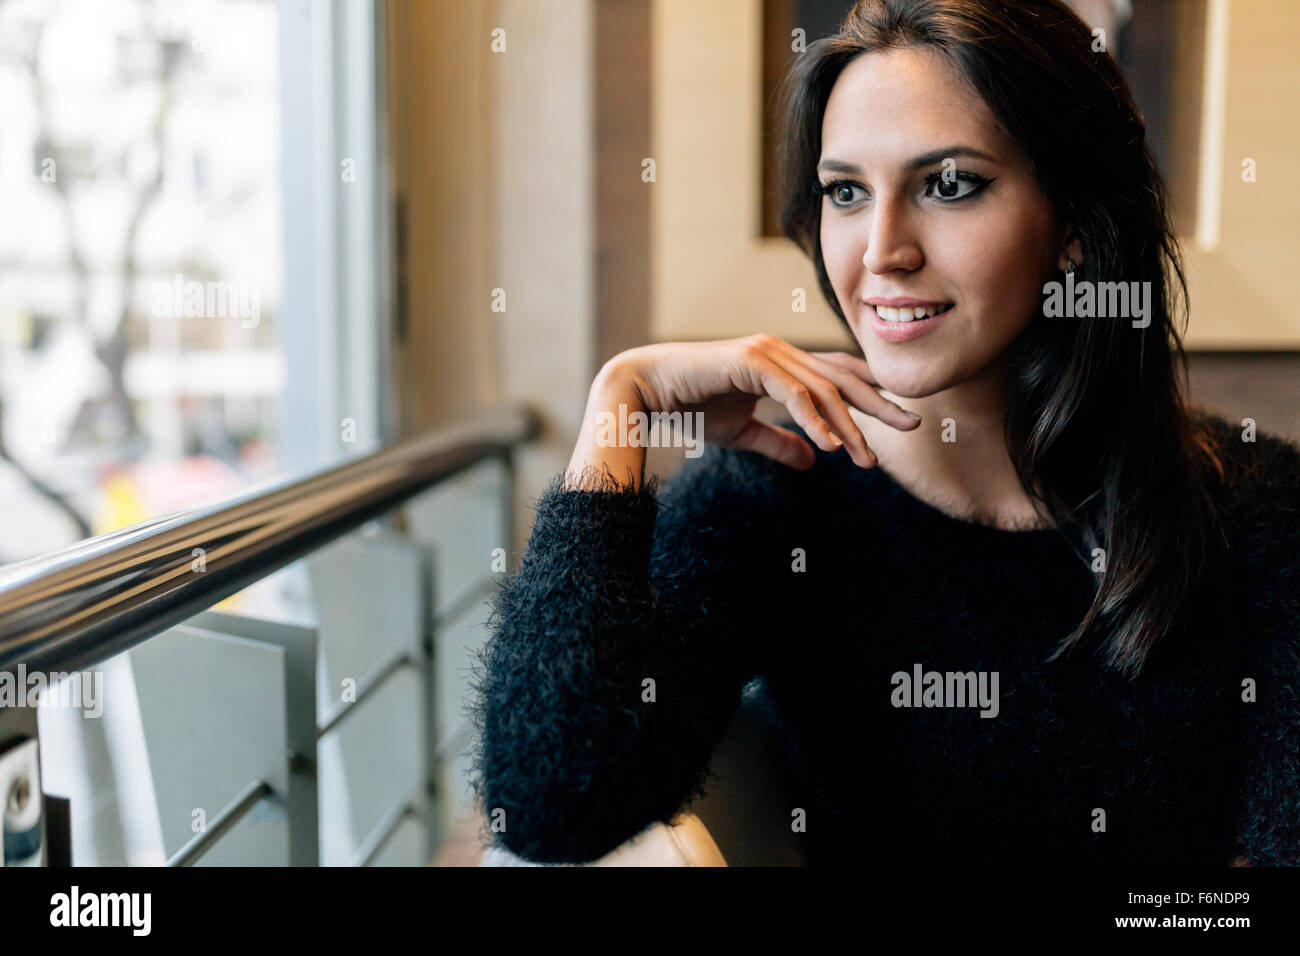 Pensive beautiful brunette looking out the window - Stock Image